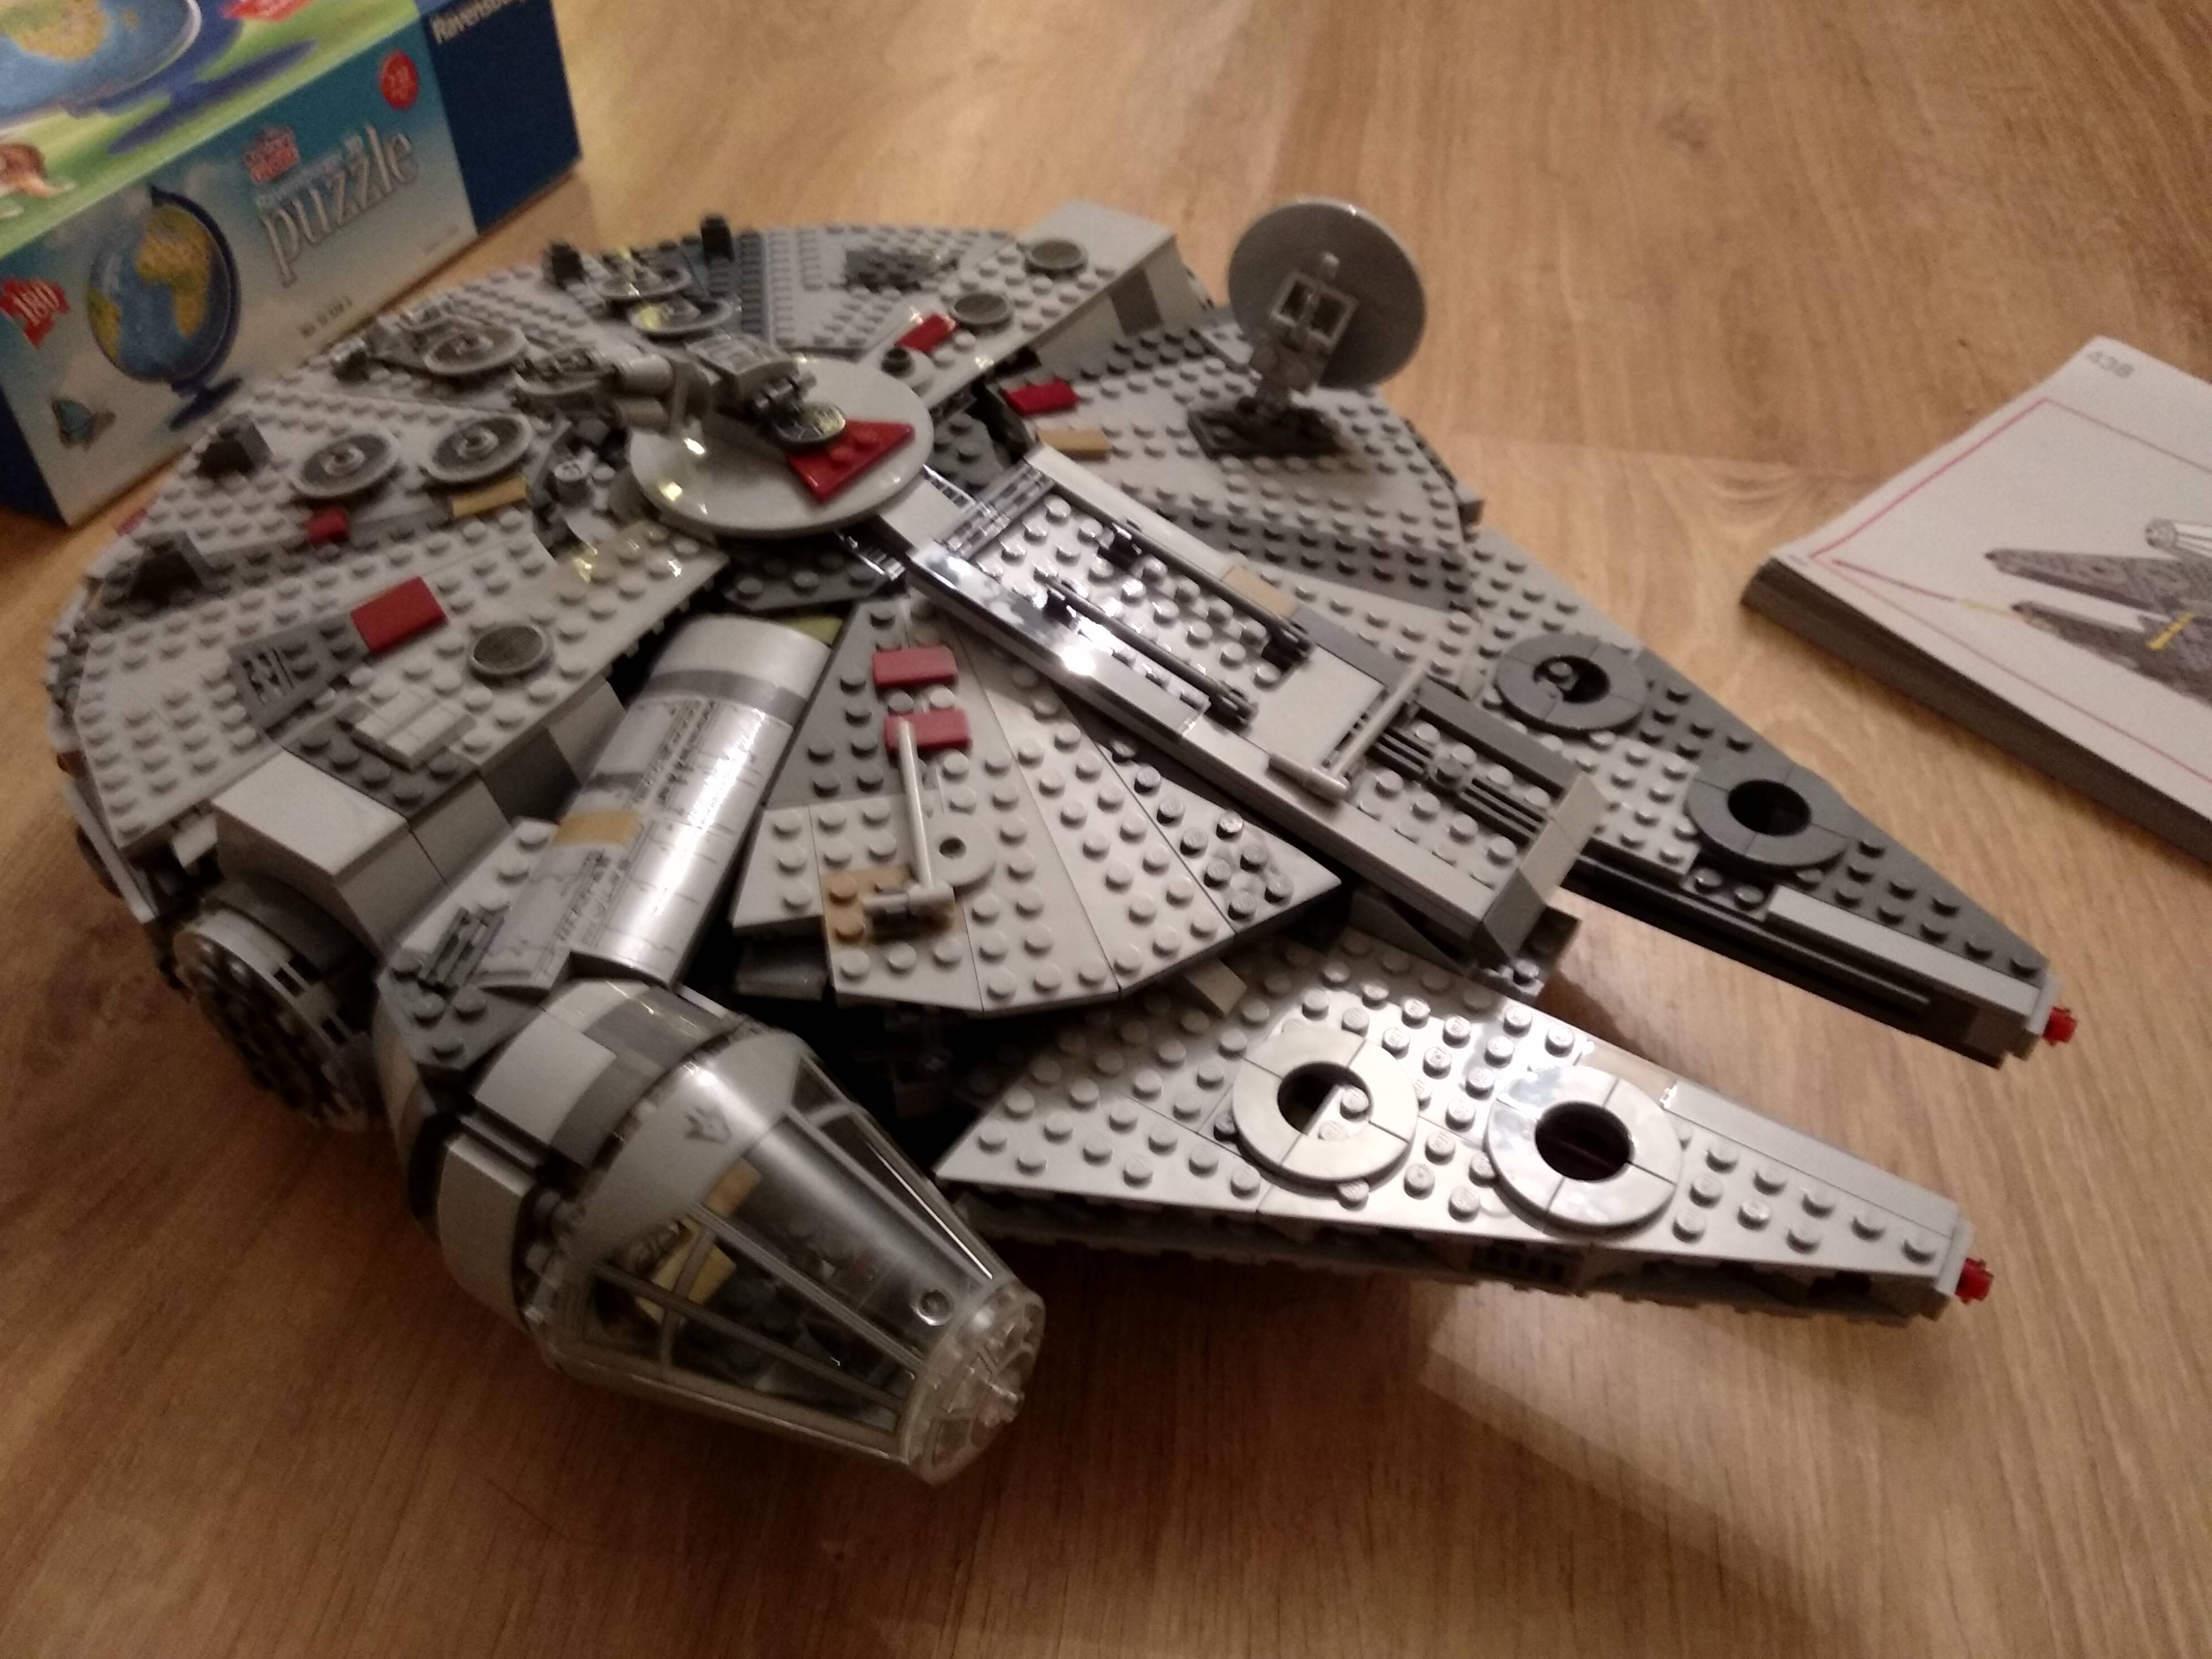 Had great fun with my son building this today! He\'s 5 years old and obsessed with Star Wars.